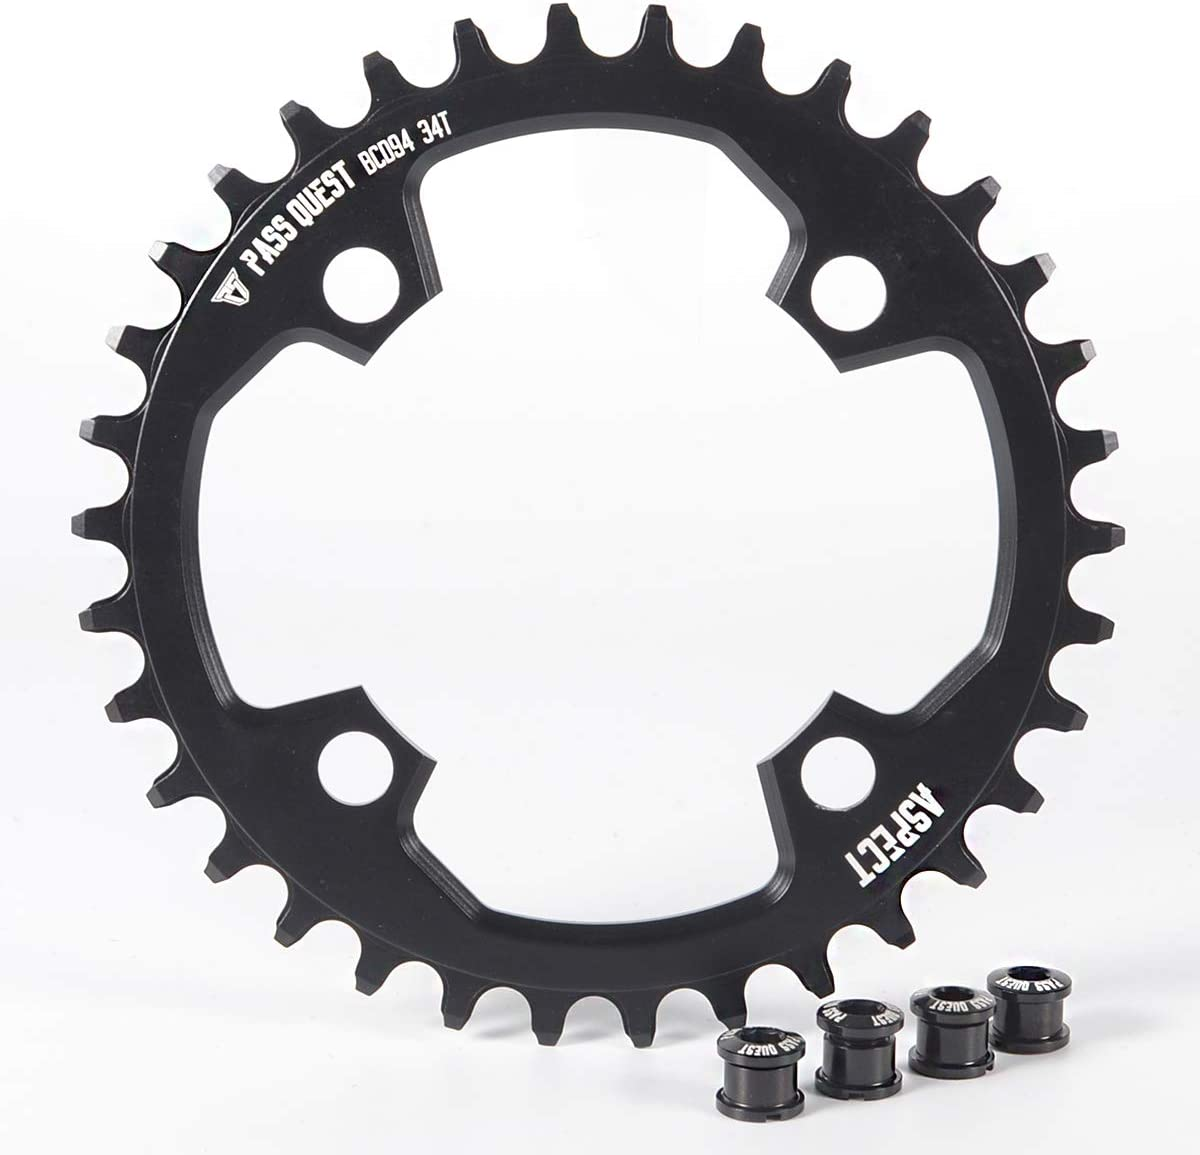 PASS QUEST 94BCD MTB Narrow Wide Chainring/Chain Ring 32T/34T/36T/38TBike Bicycle Chainwheel/Chain Wheel Crankset